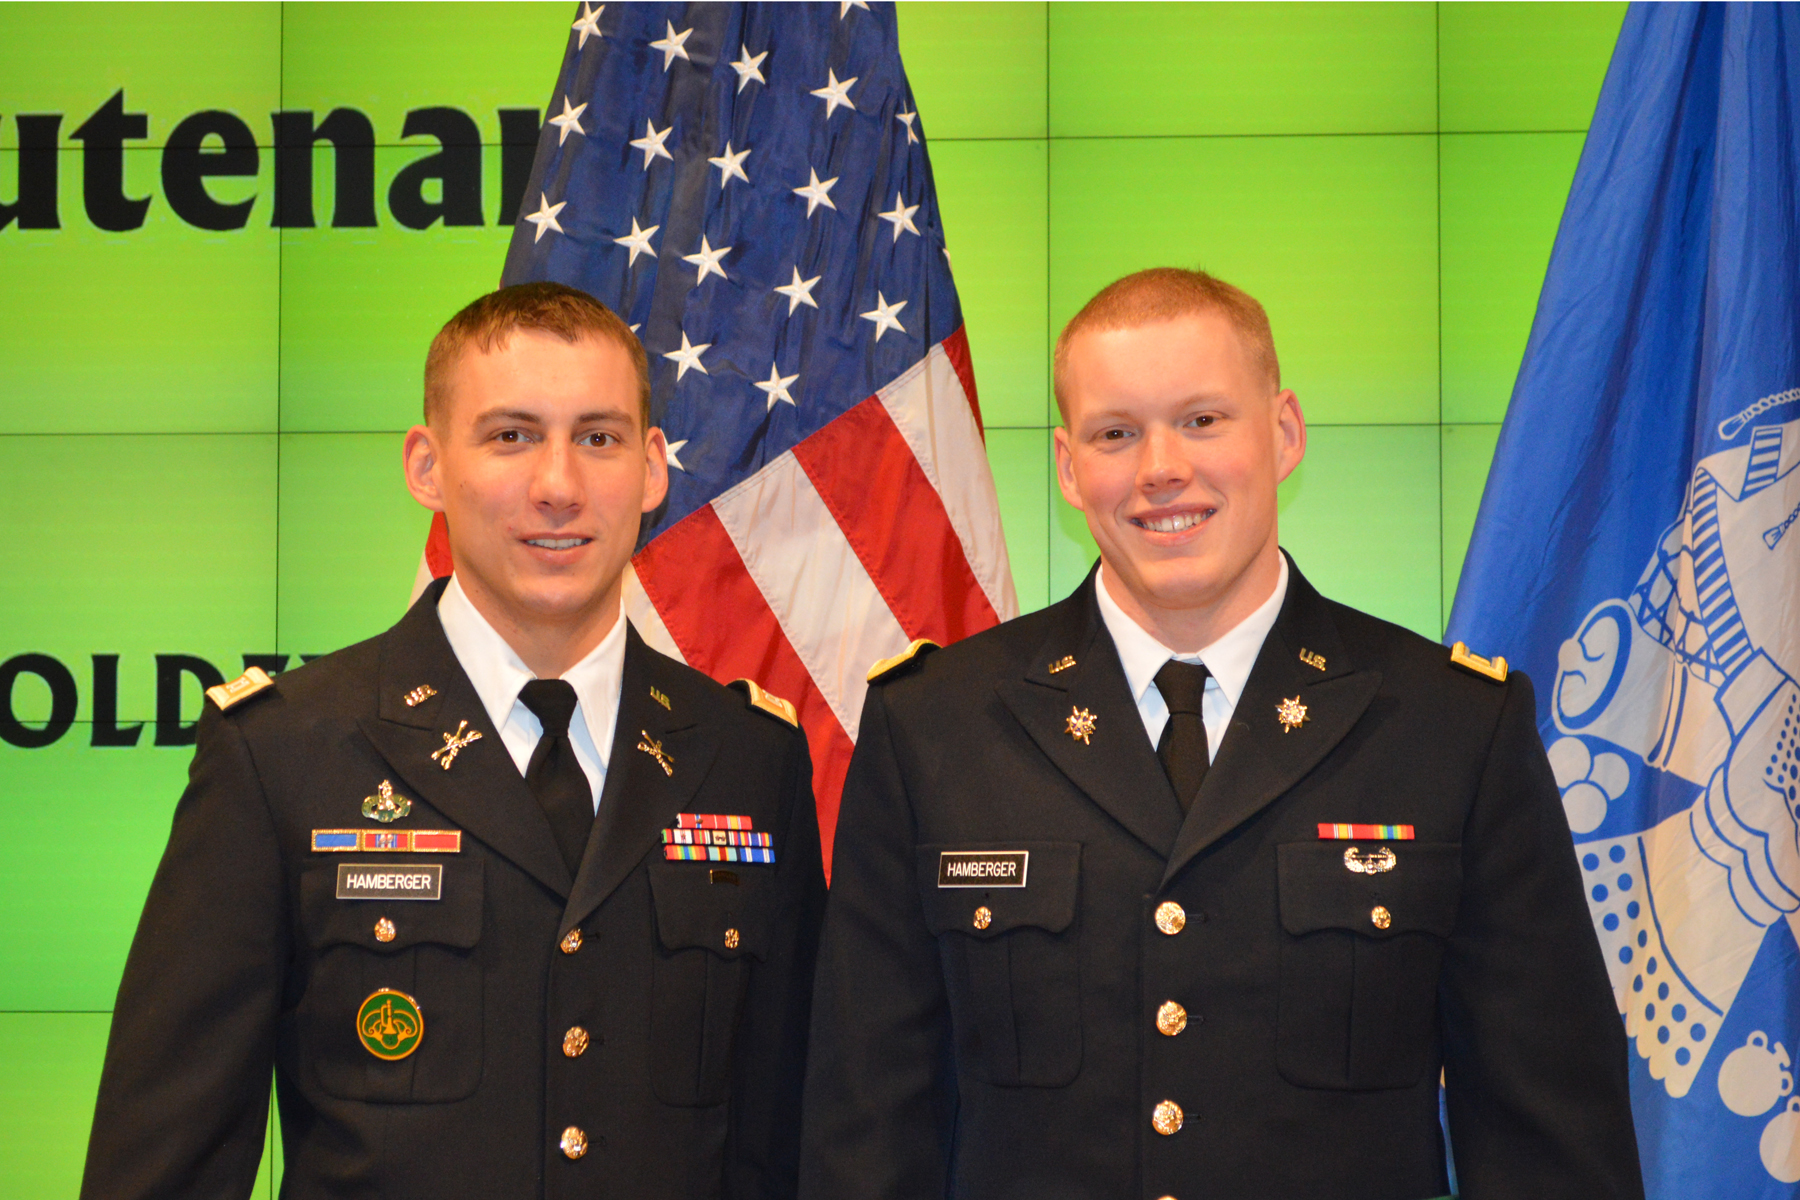 Second Lt. Thomas C. Hamberger U002713 (right) Was Commissioned Into The Military  Intelligence Branch Of The U.S. Army. His Brother, Capt.